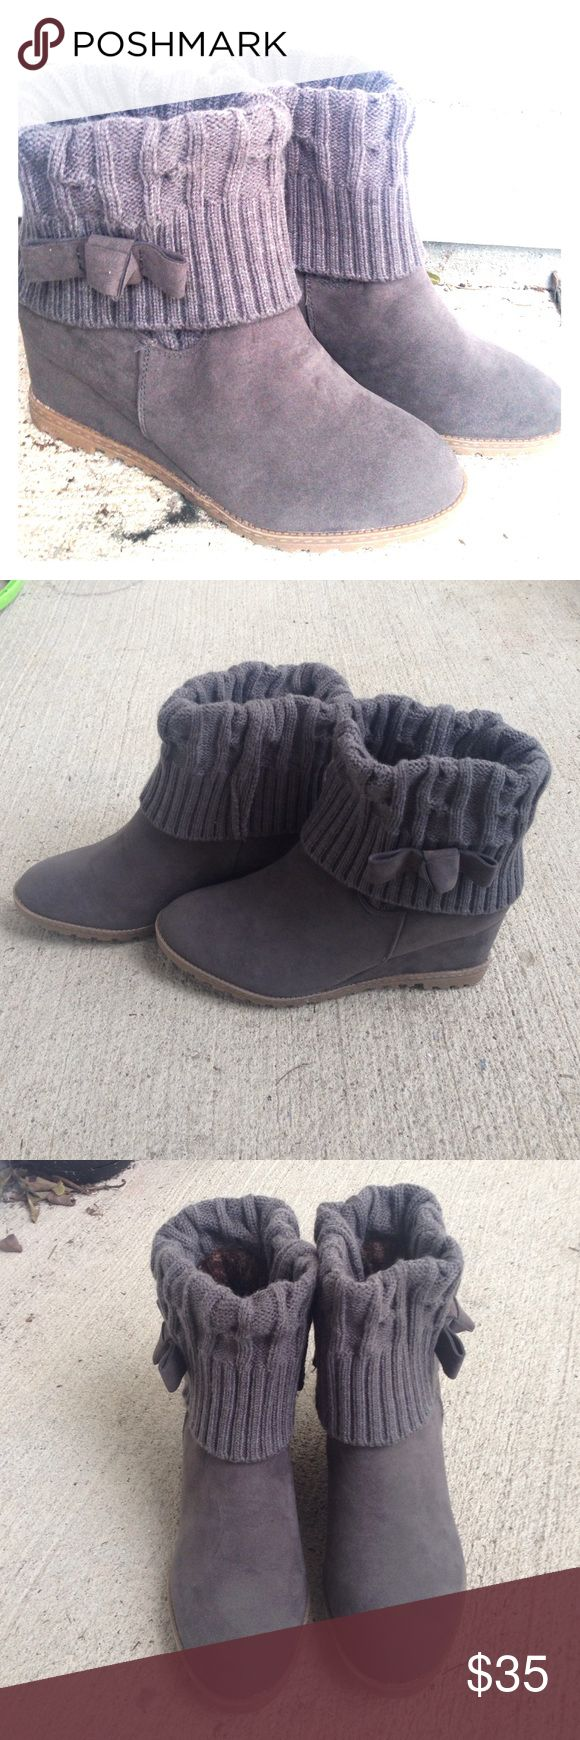 Wedge Boots Beautiful grey wedge boots Brand new never worn, actual size is 8.5 but they feel like 8 Maurices Shoes Ankle Boots & Booties